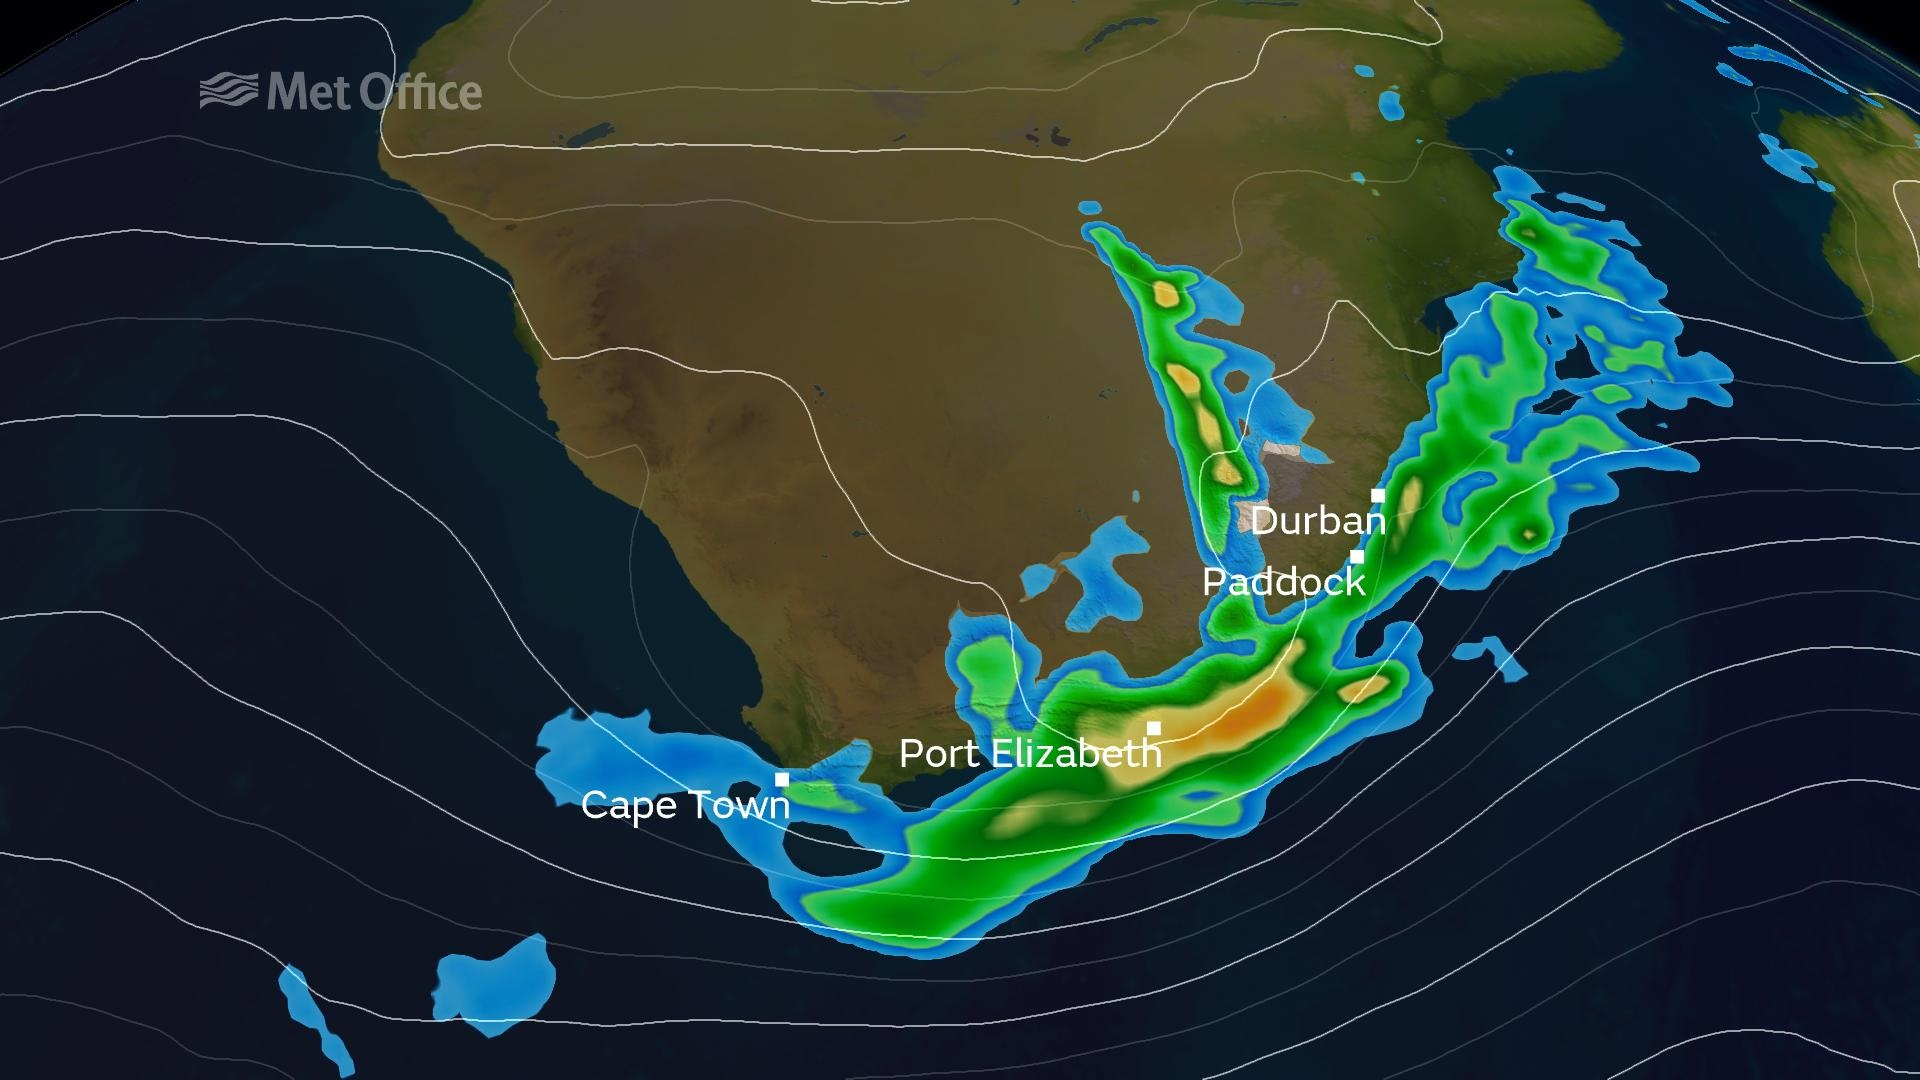 Record breaking rainfall and cold weather grips south africa rainfall affecting coastal areas of south africa gumiabroncs Images